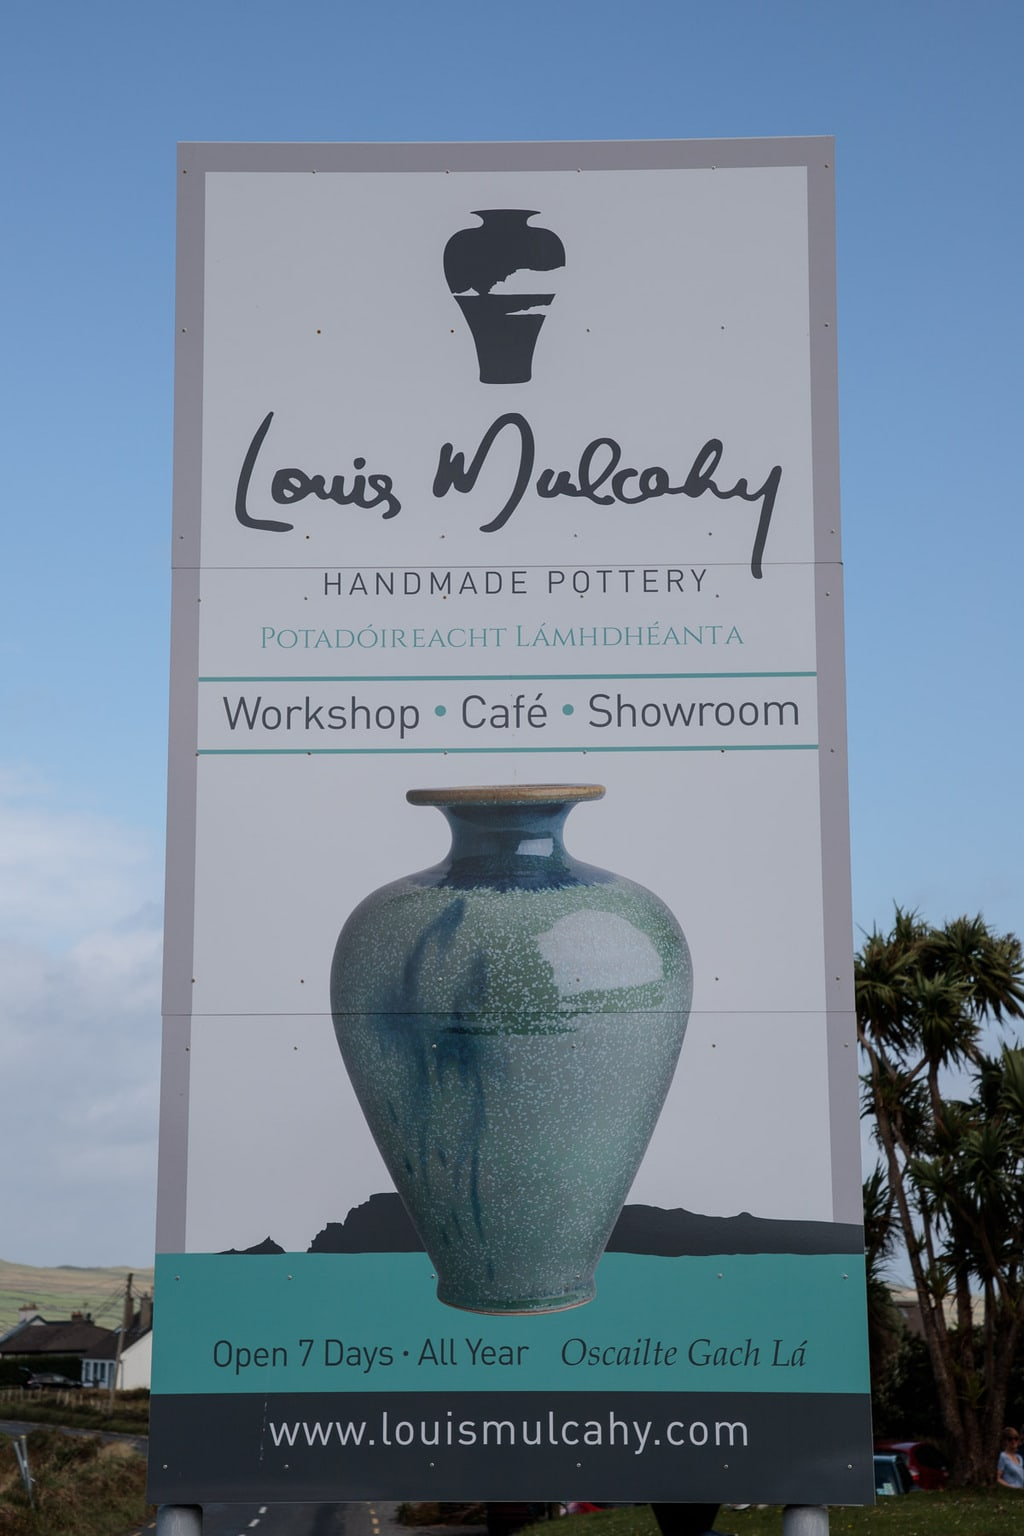 Photo of the Louis Mulcahy pottery studio along the coastline in the Dingle Peninsula, Ireland.